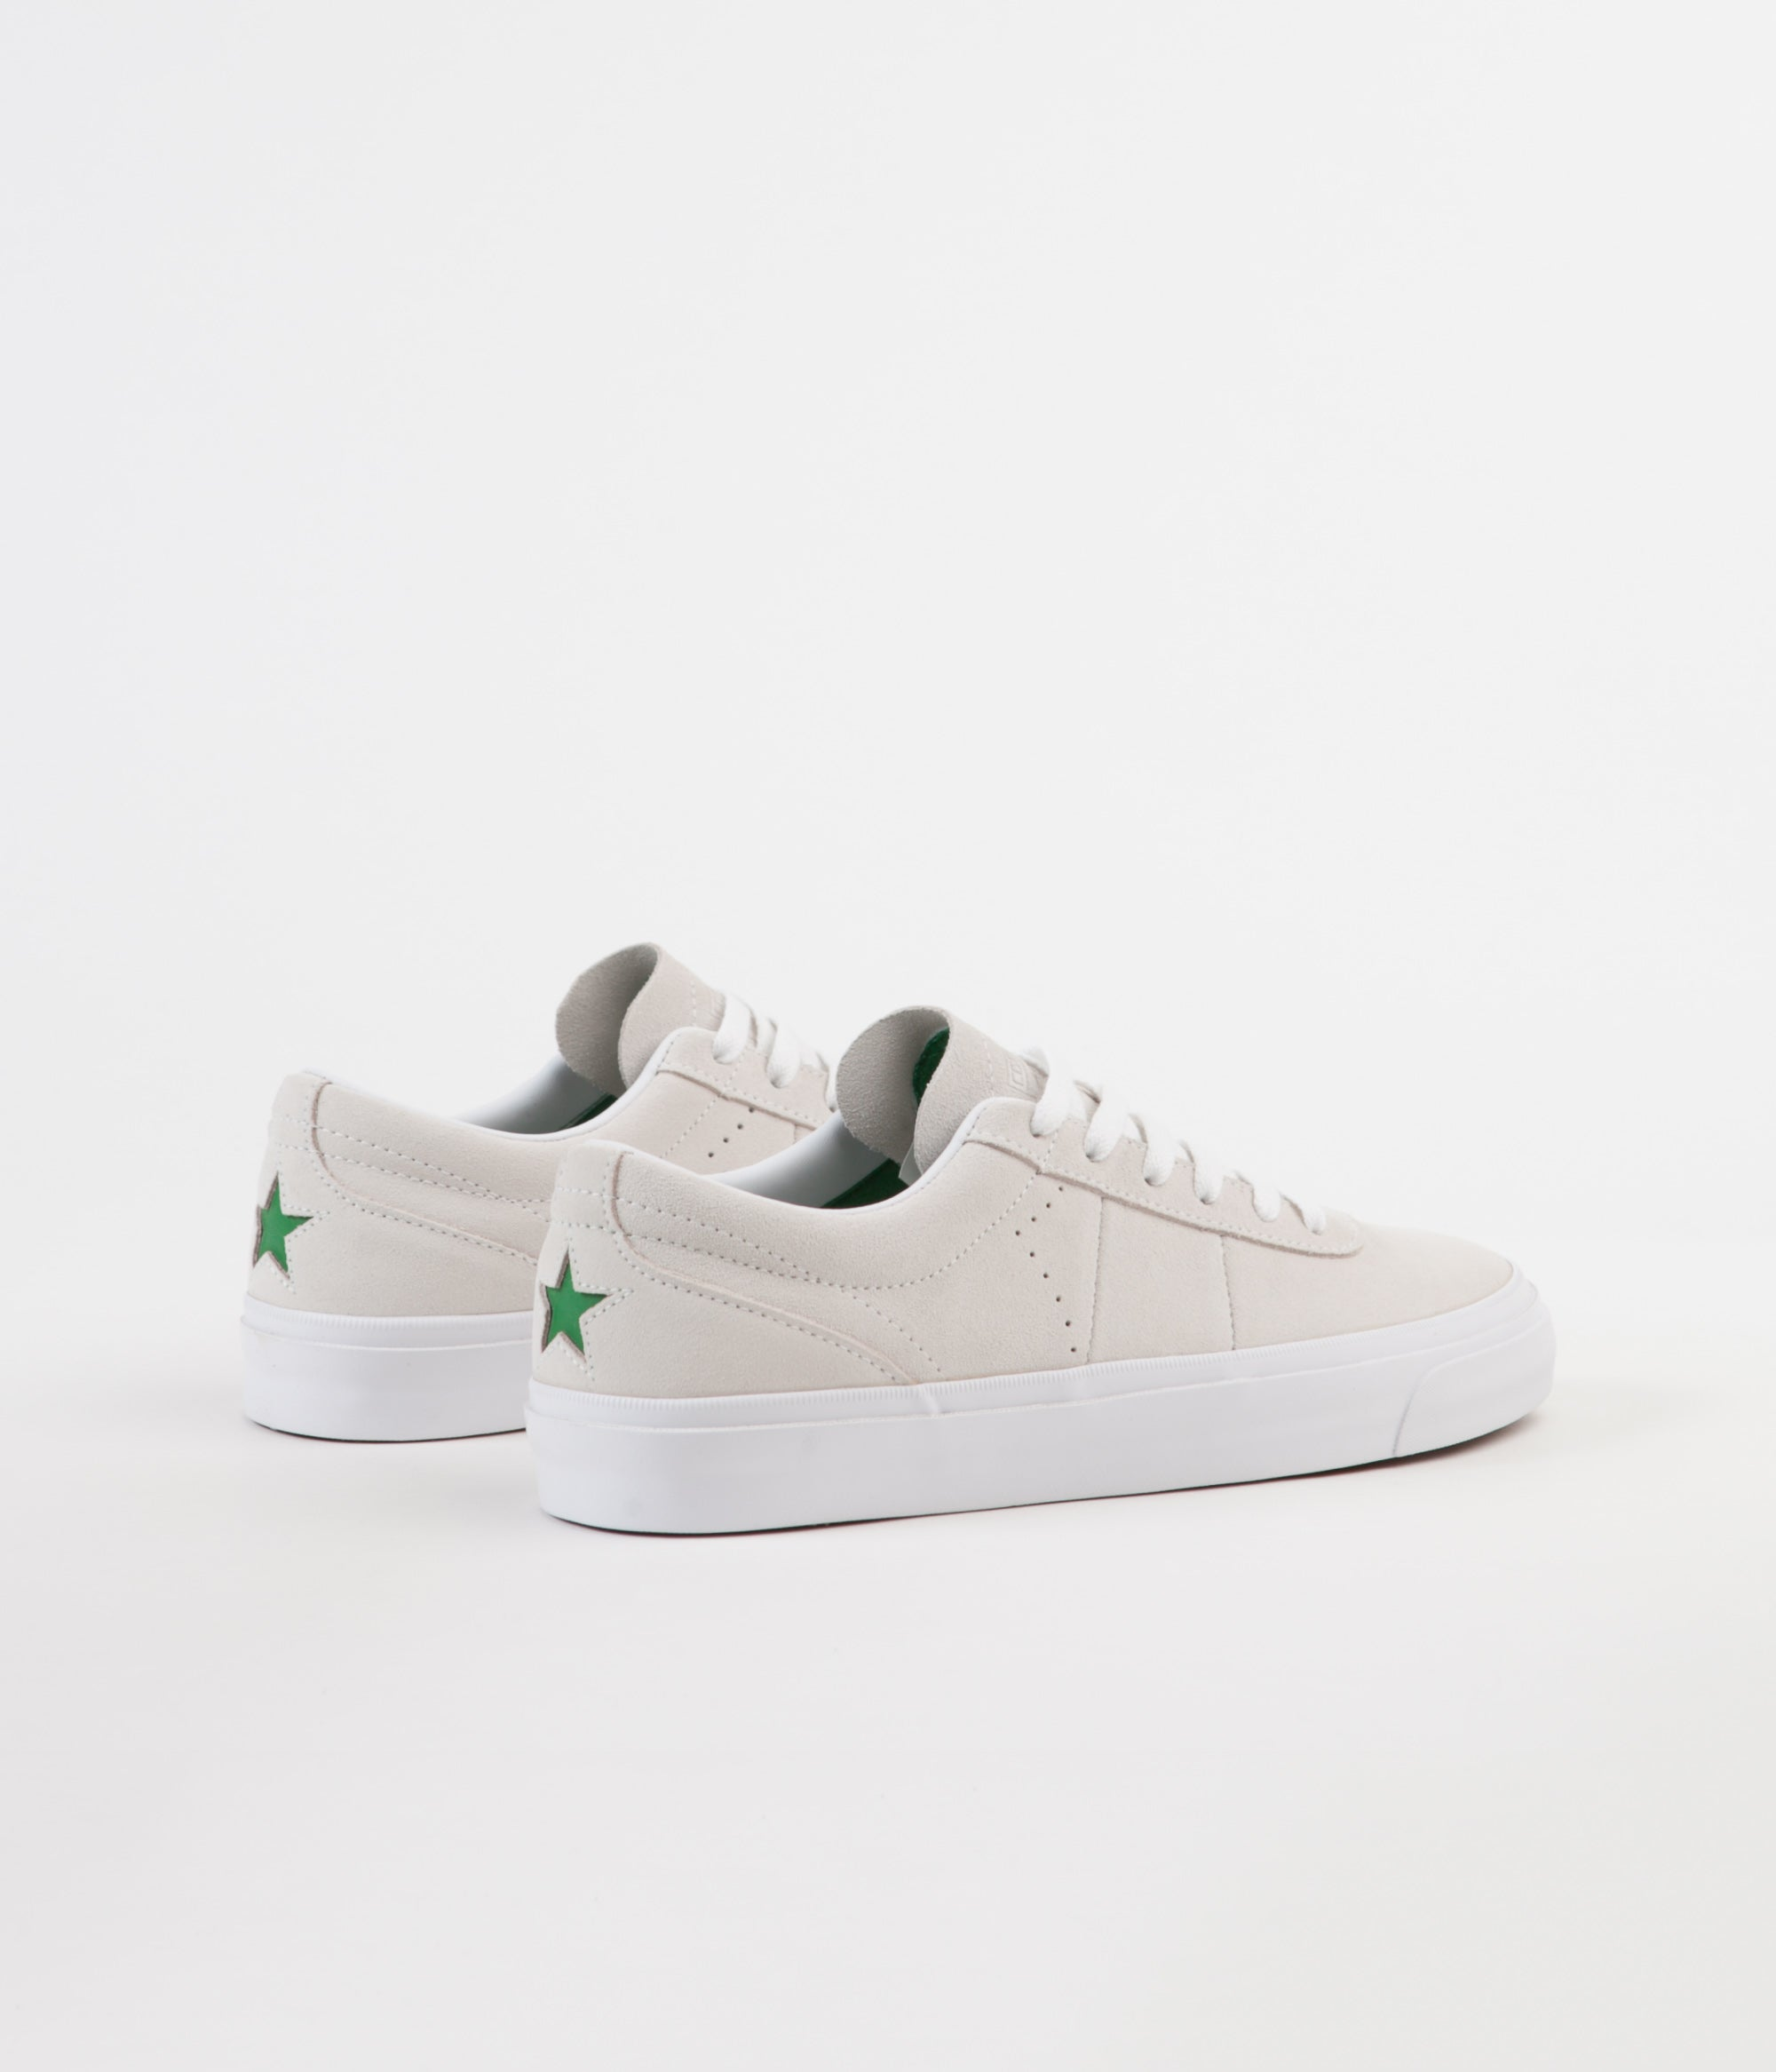 ... Converse One Star CC Pro Ox Shoes - White   Green   White ... b1290c036